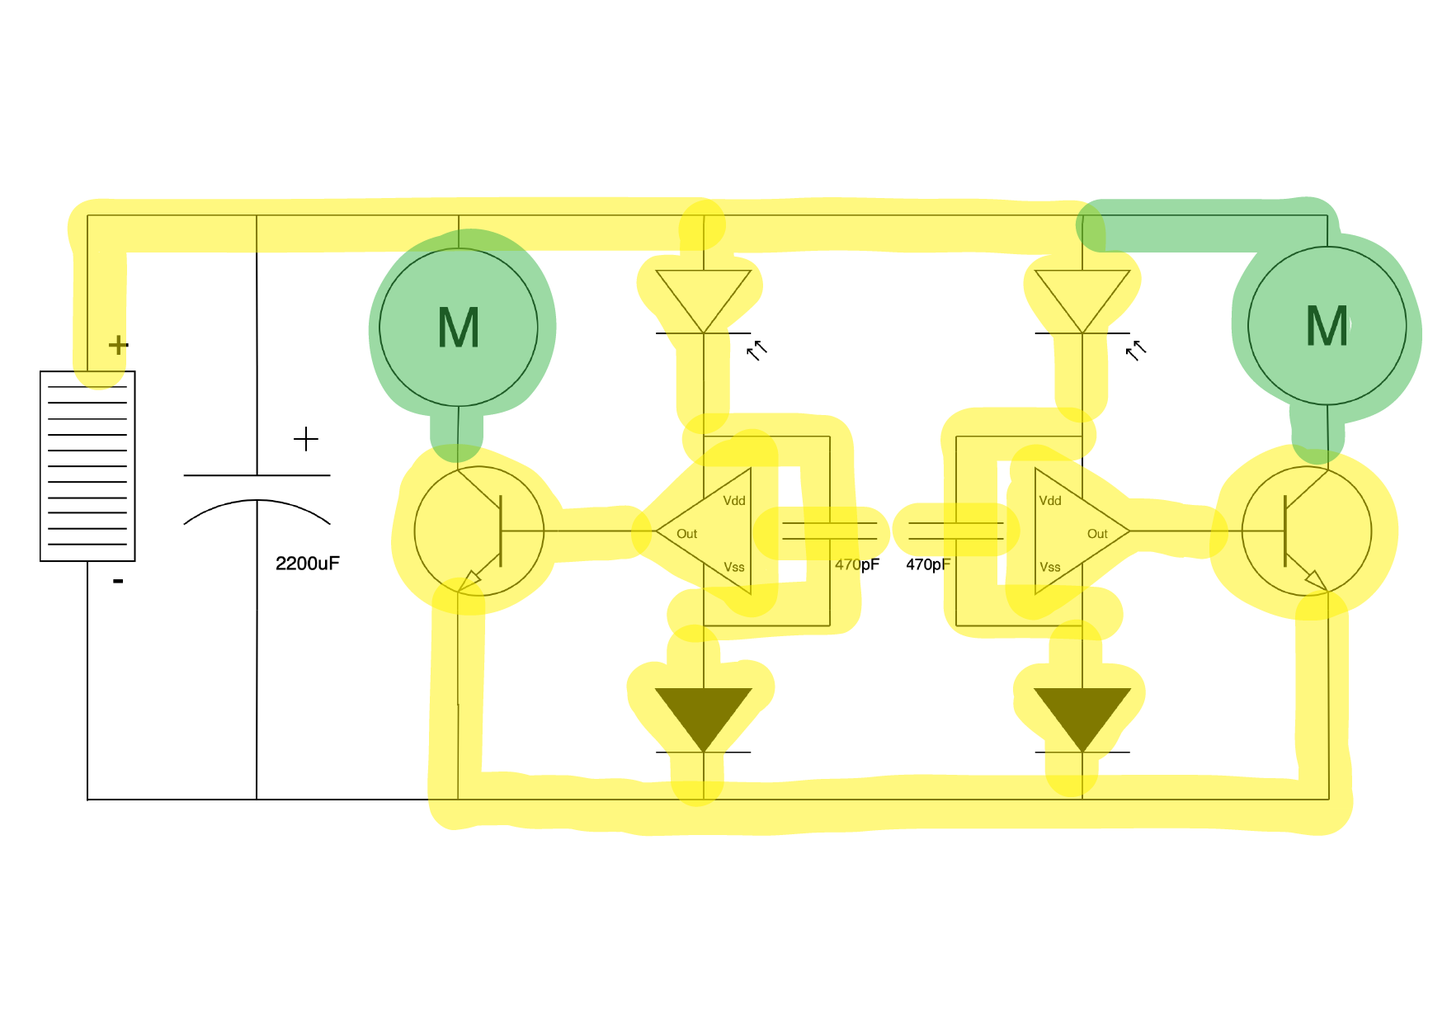 Freeforming the Circuit 11: Motor Connections